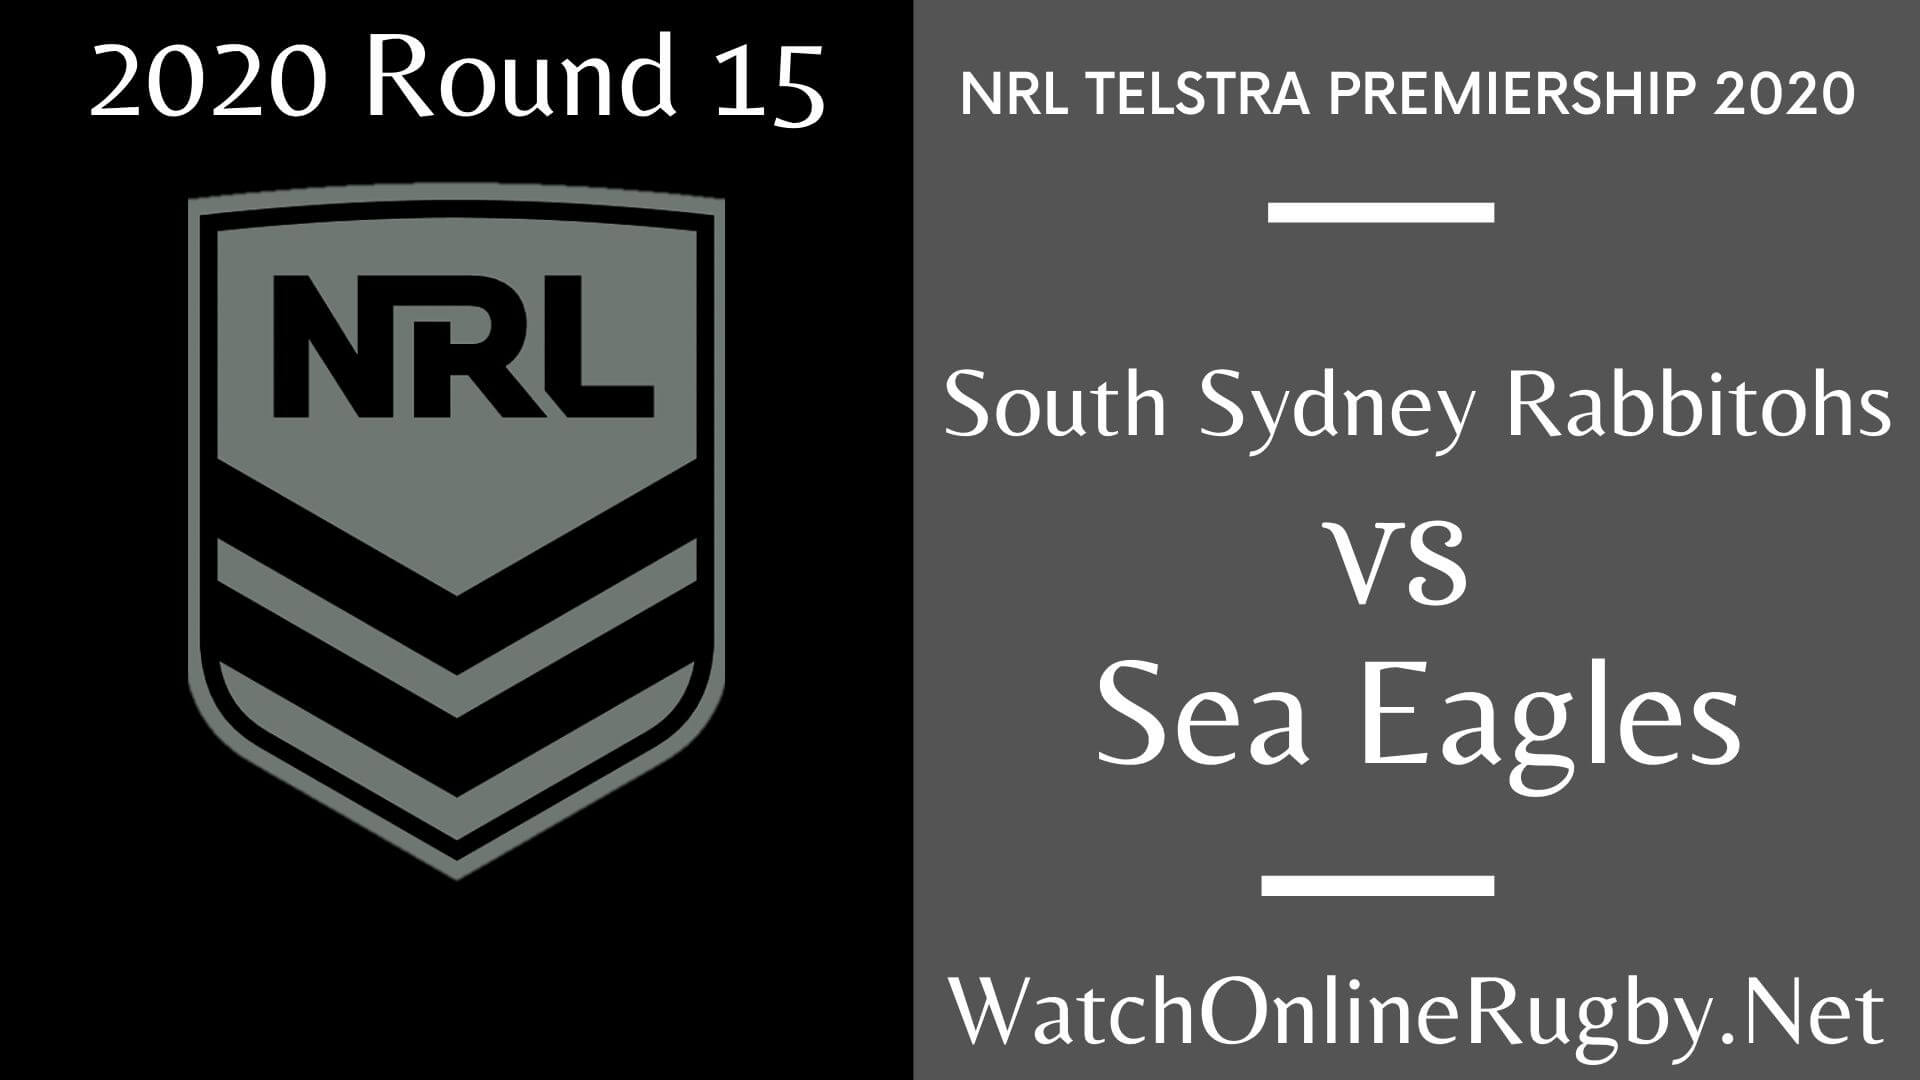 Rabbitohs VS sea Eagles Highlights 2020 Rd 15